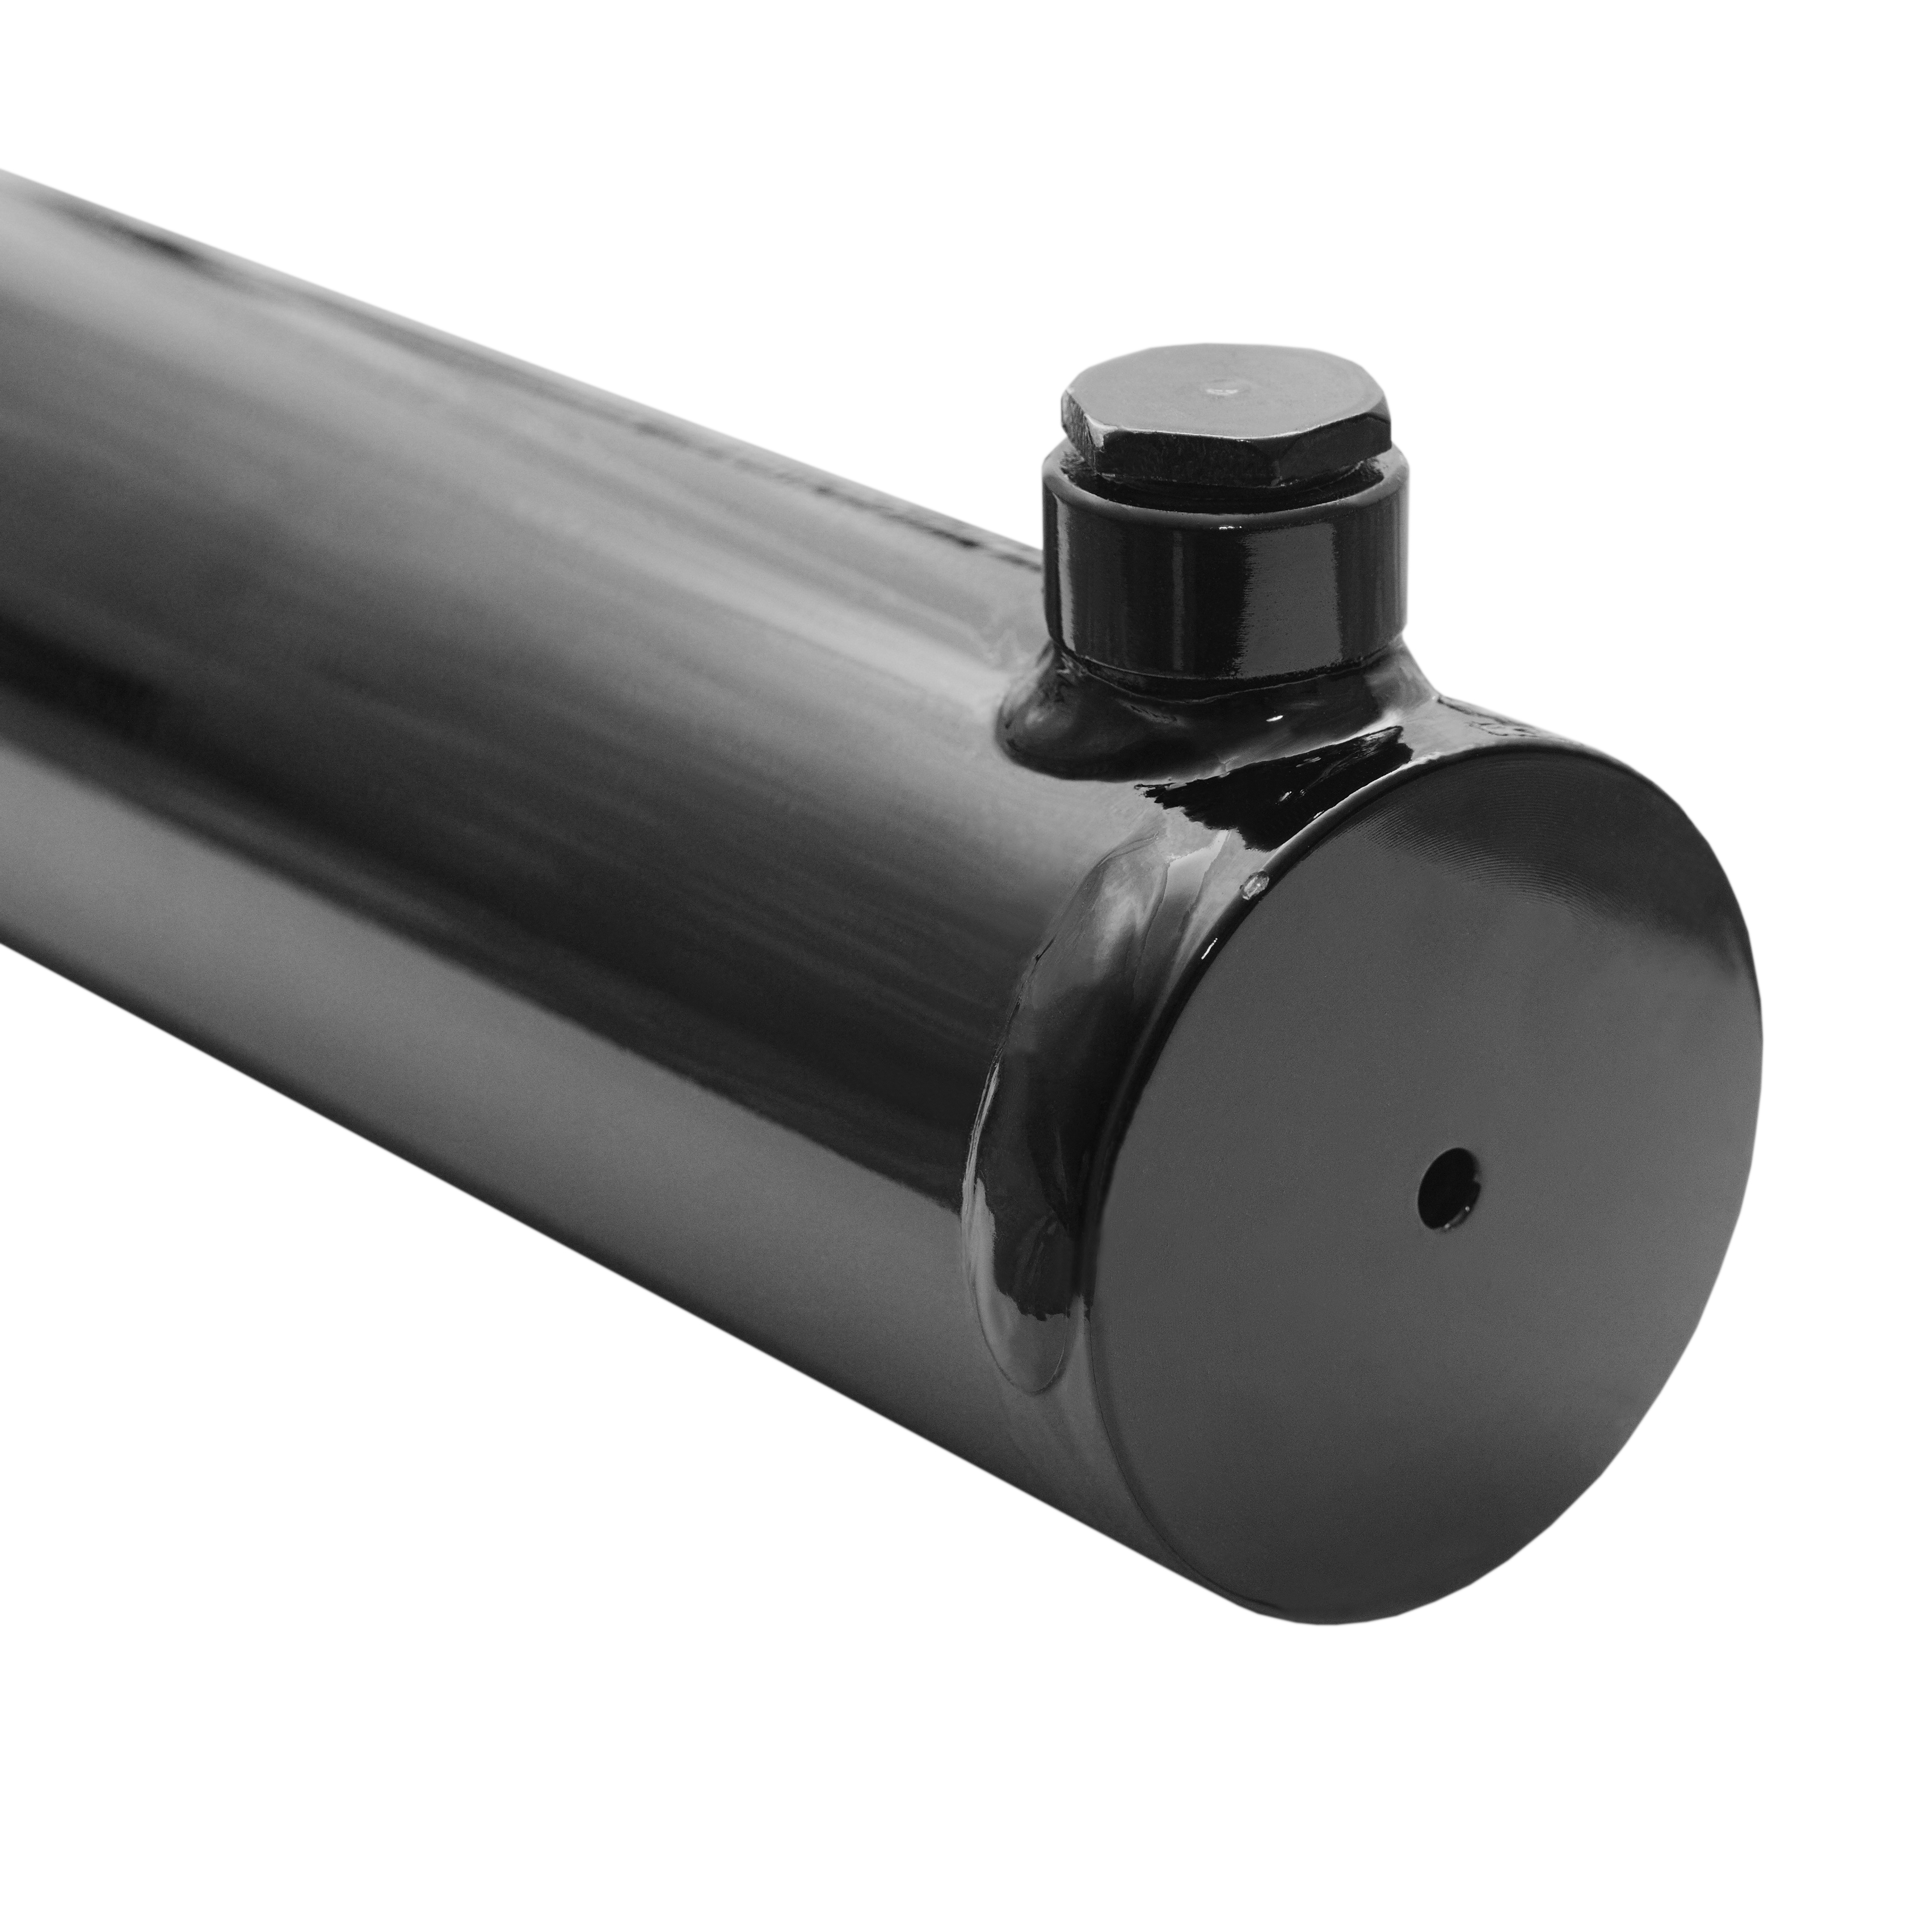 2 bore x 14 stroke hydraulic cylinder, welded universal double acting cylinder   Magister Hydraulics